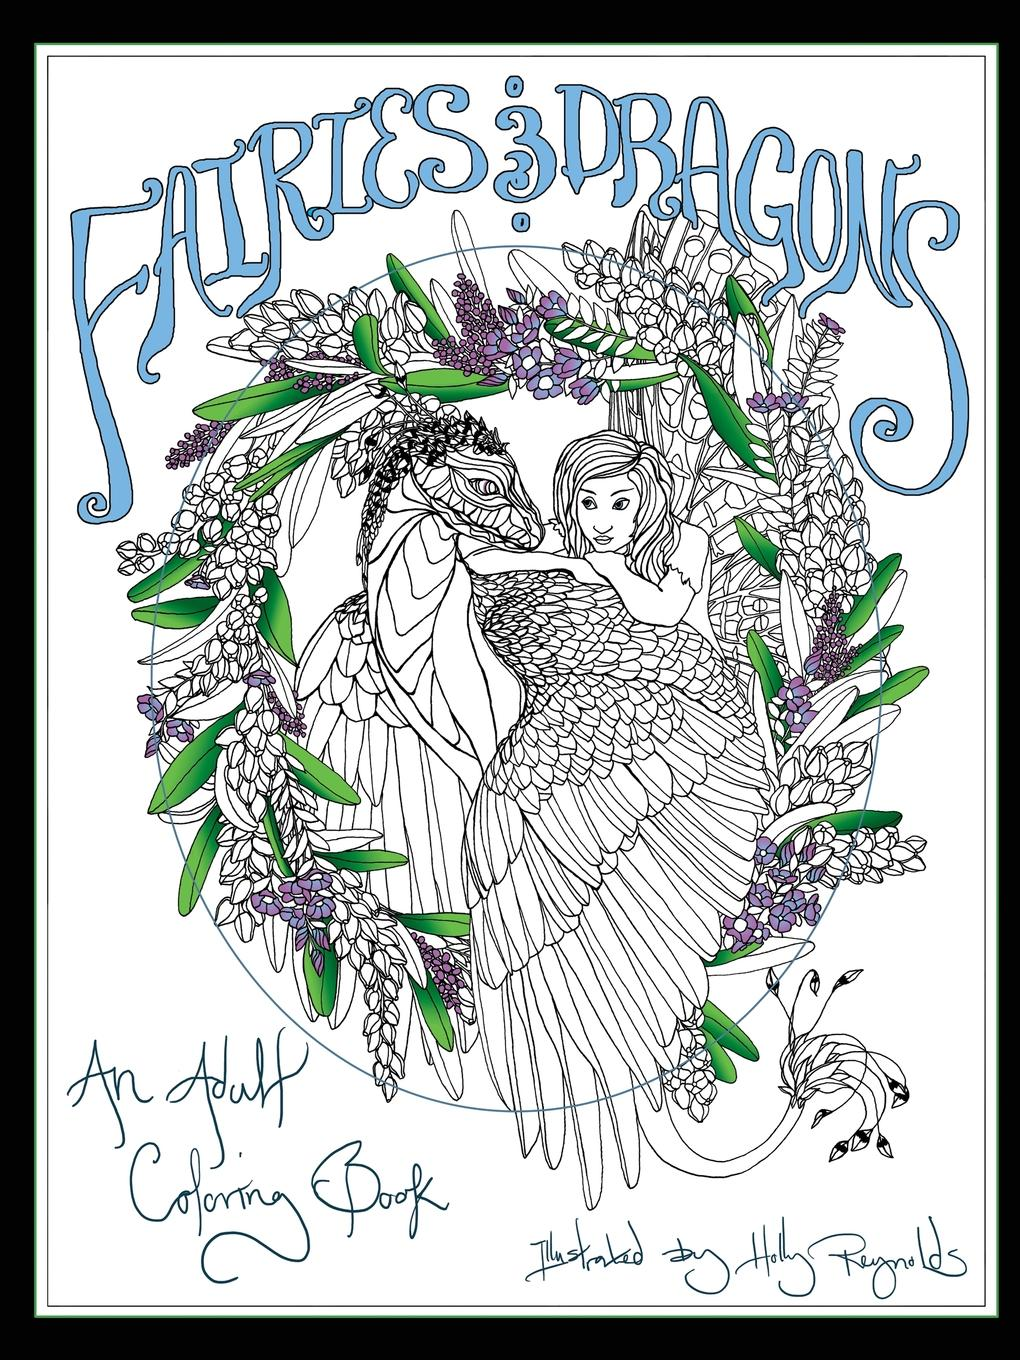 Holly Reynolds Fairies and Dragons. An Adult Coloring Book davidson s fairies to colour